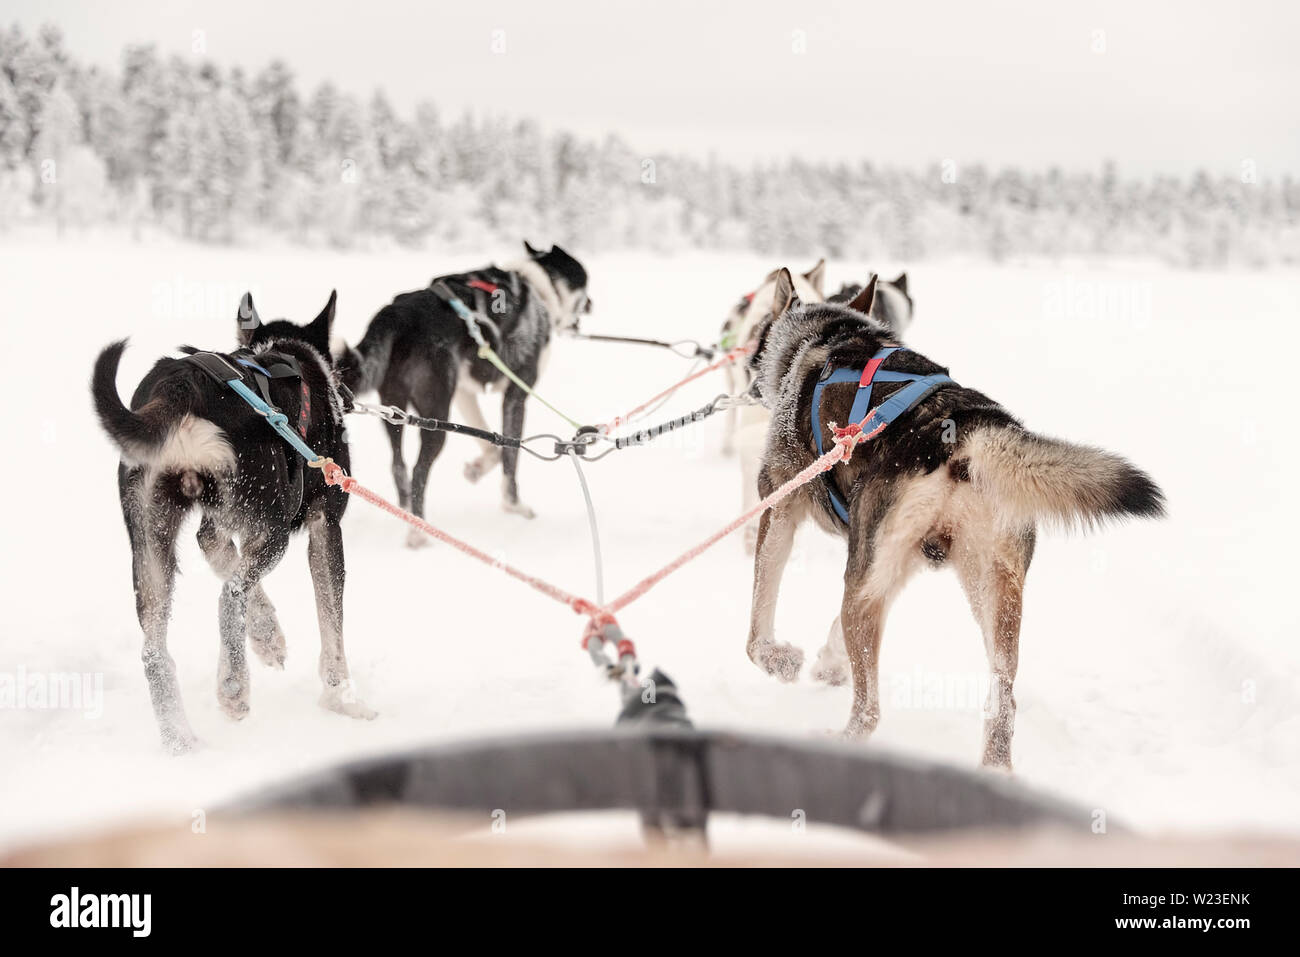 Finland, Inari - January 2019: lone team of huskies pulling ahead, view from sled Stock Photo